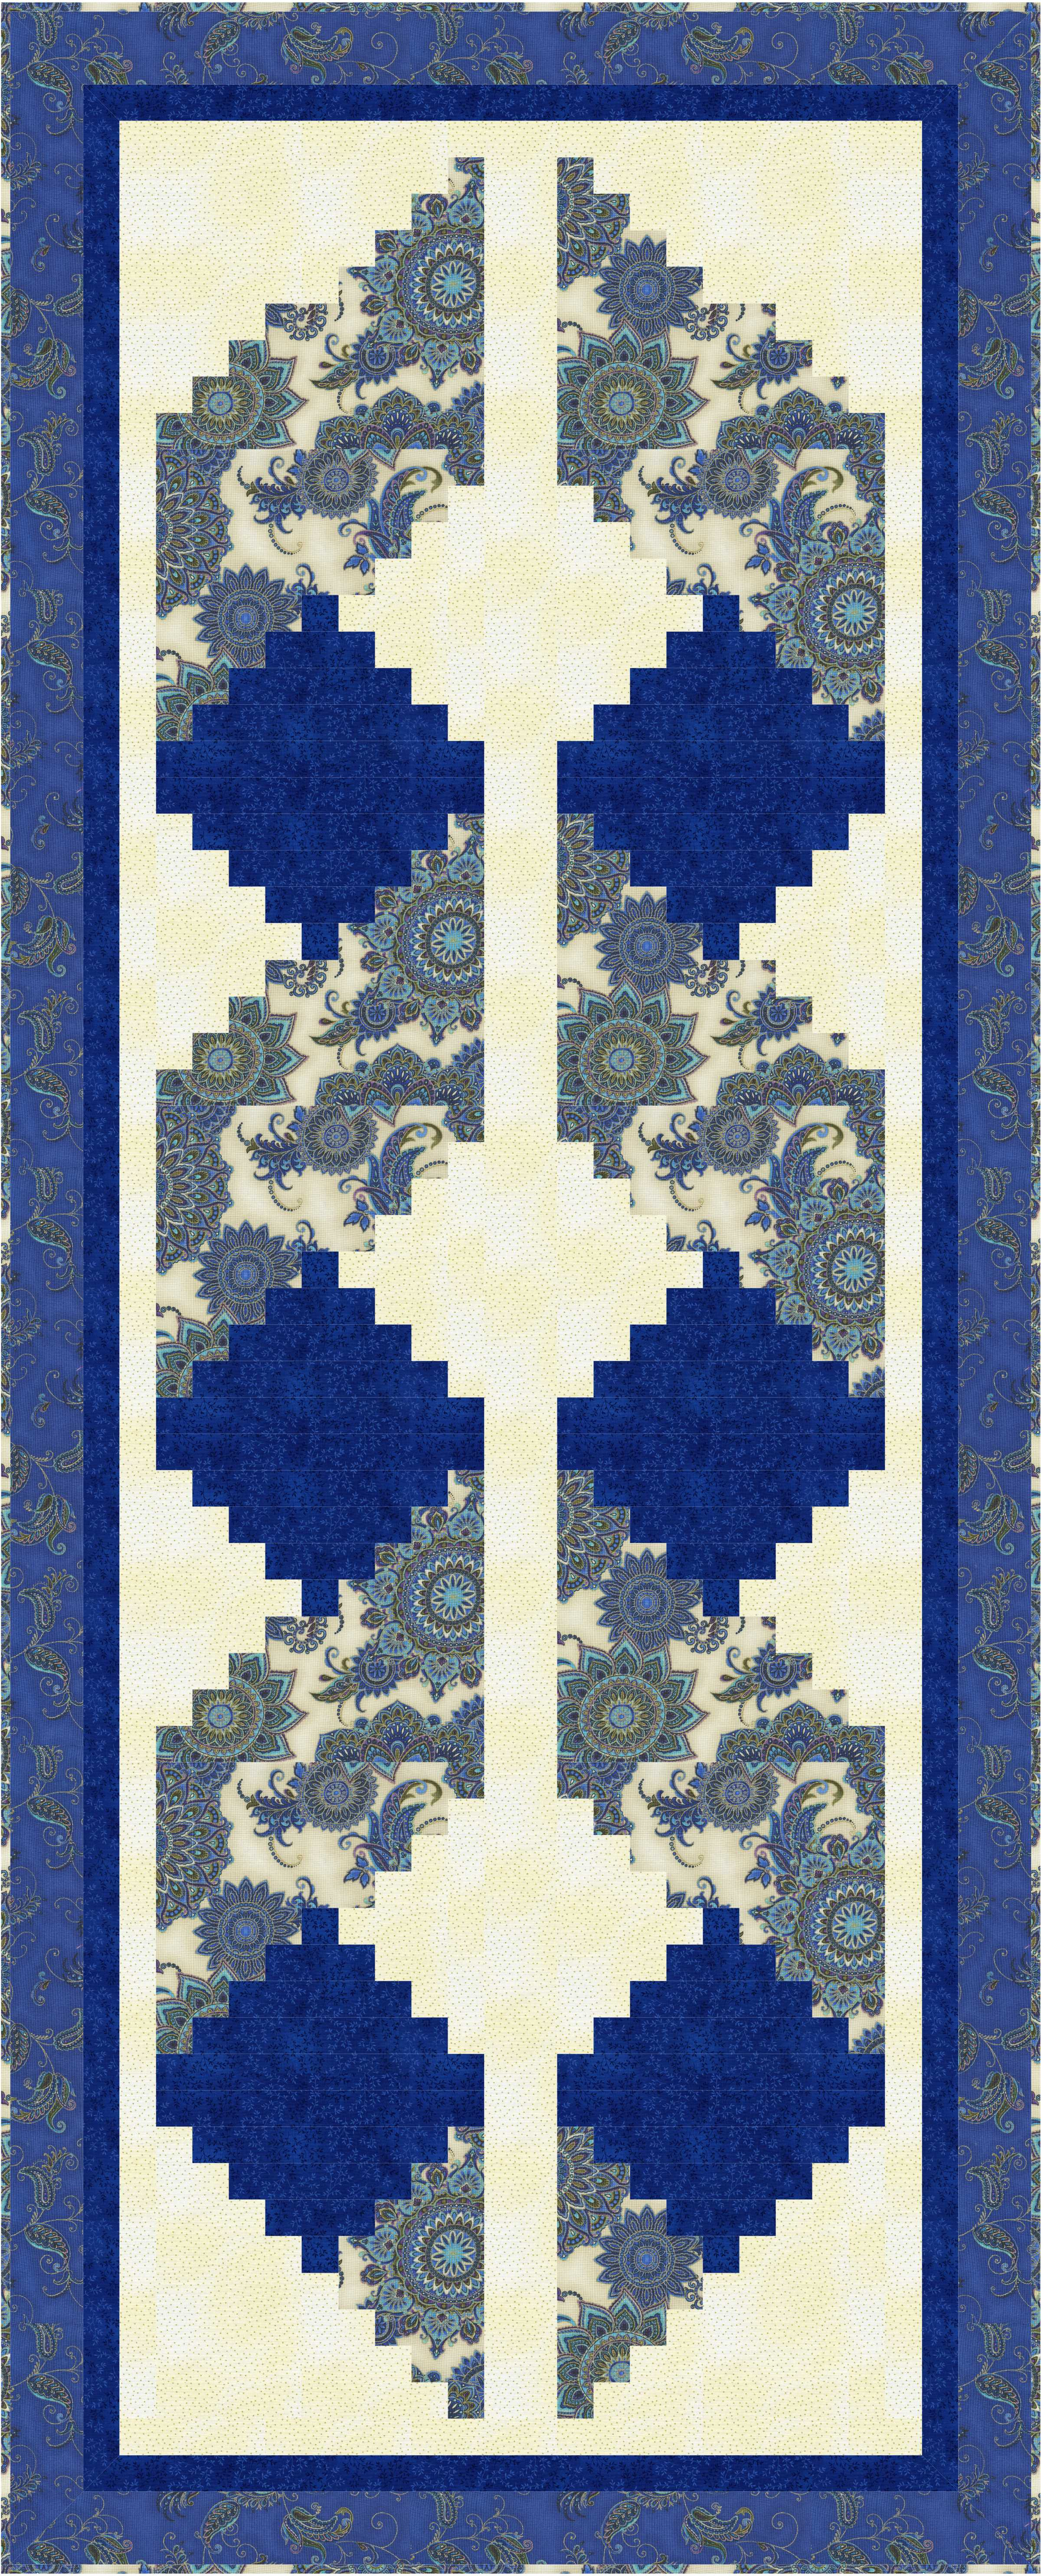 Kwanita Downloadable Quilt Pattern